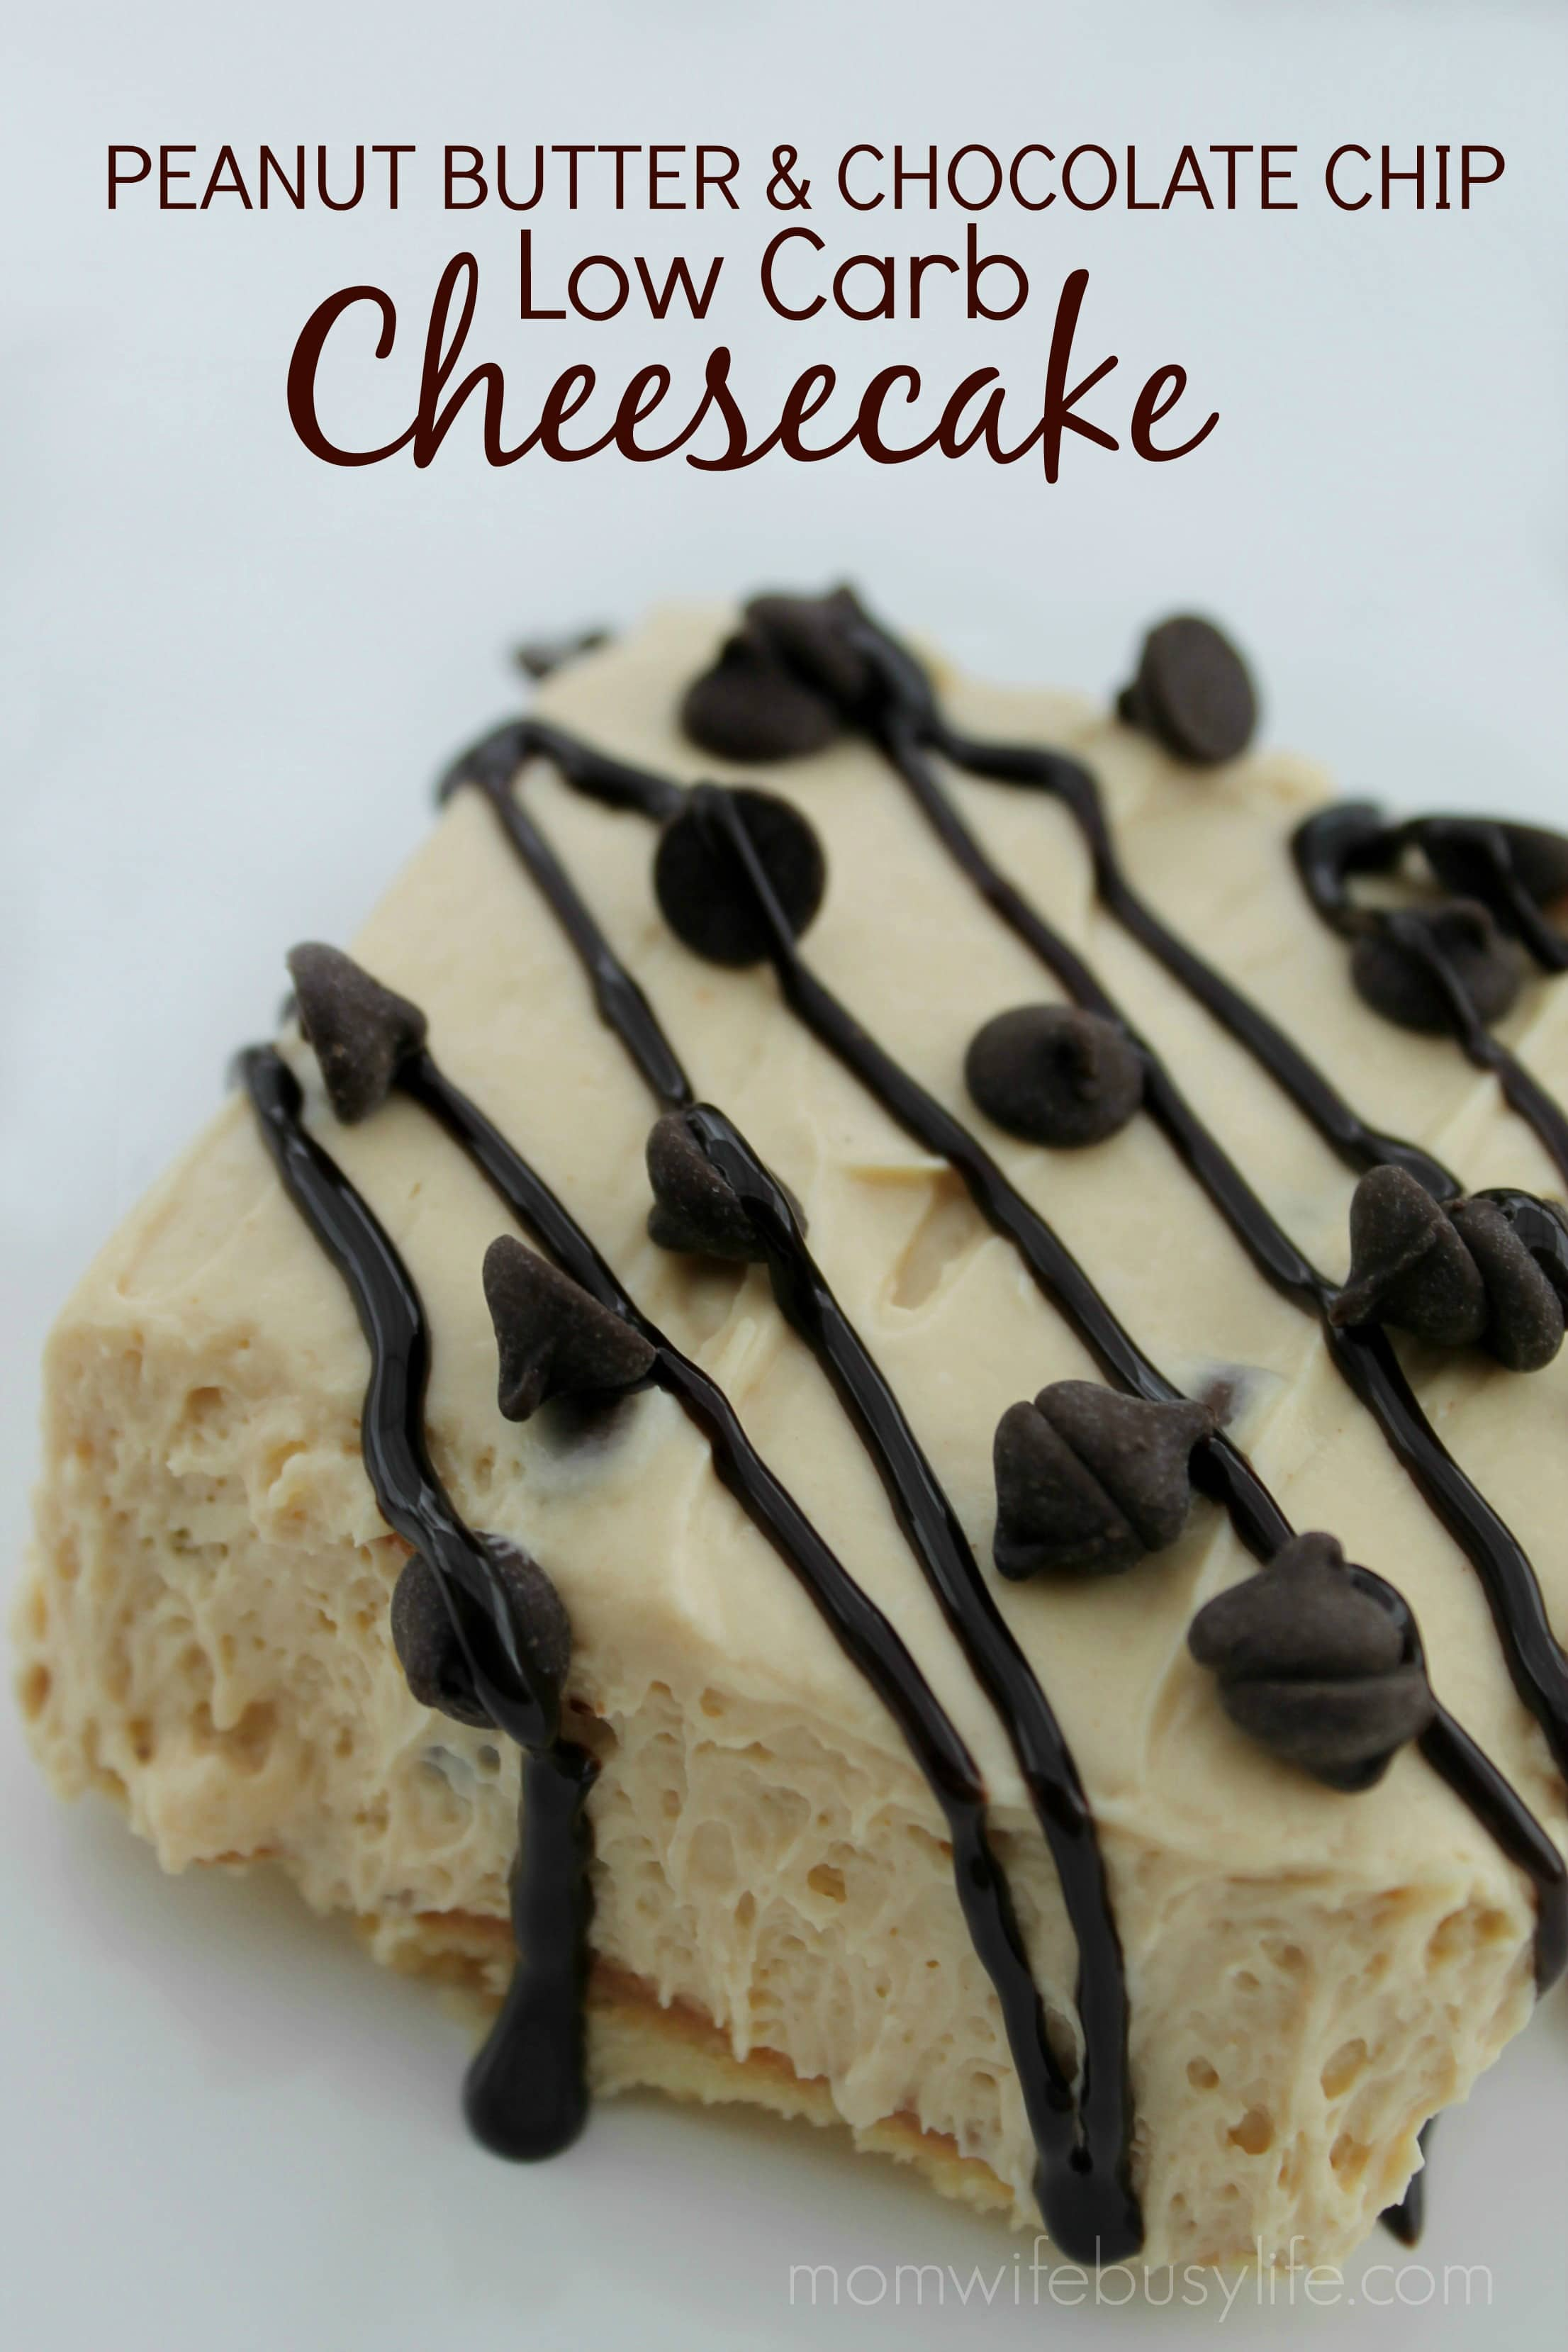 Low Carb Peanut Butter Chocolate Chip Cheesecake